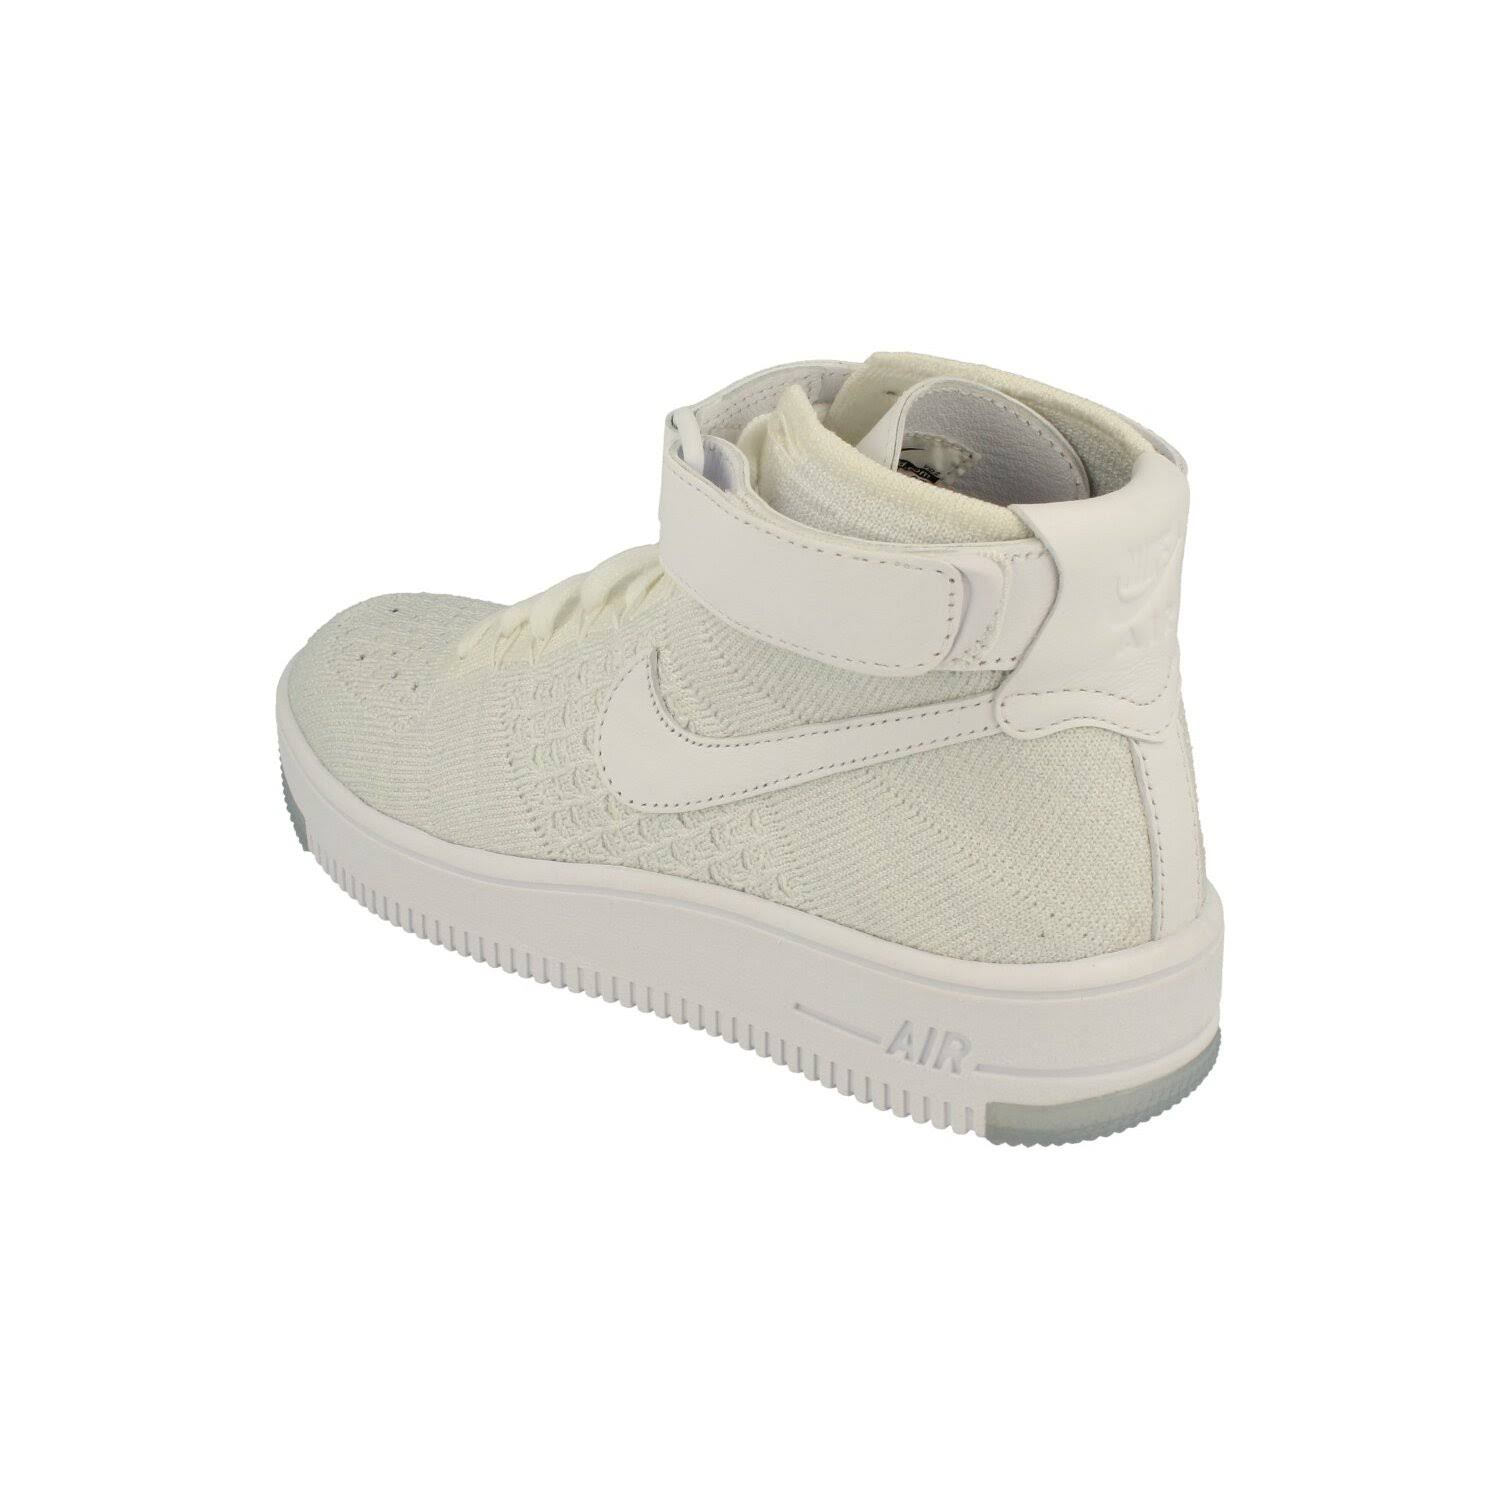 (5) Nike Womens Af1 Air Force 1 Flyknit Hi Top Trainers 818018 Sneakers Shoes 100  D5W7gMu